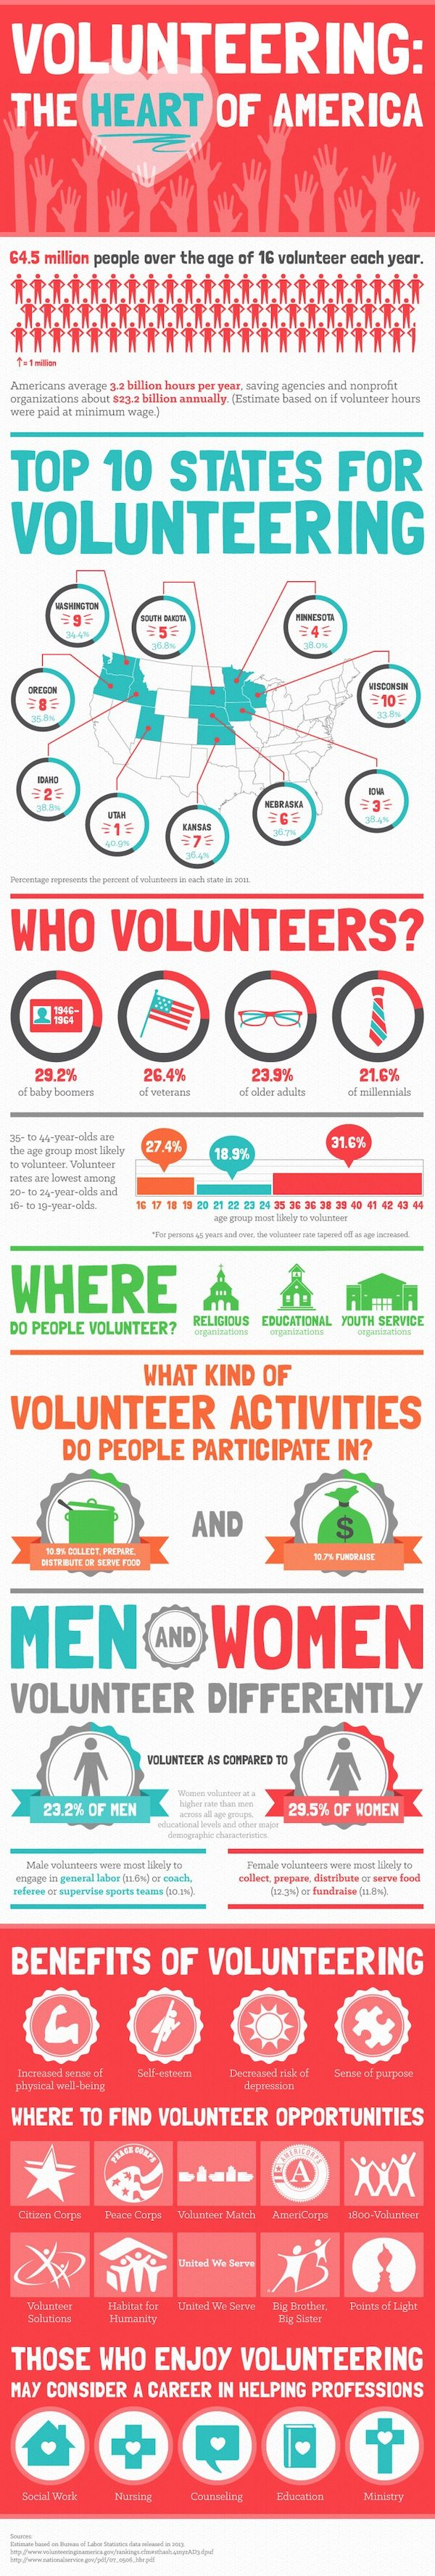 infographic why volunteering is good for your health your career in honor of volunteers and all they do heart of america infographic details